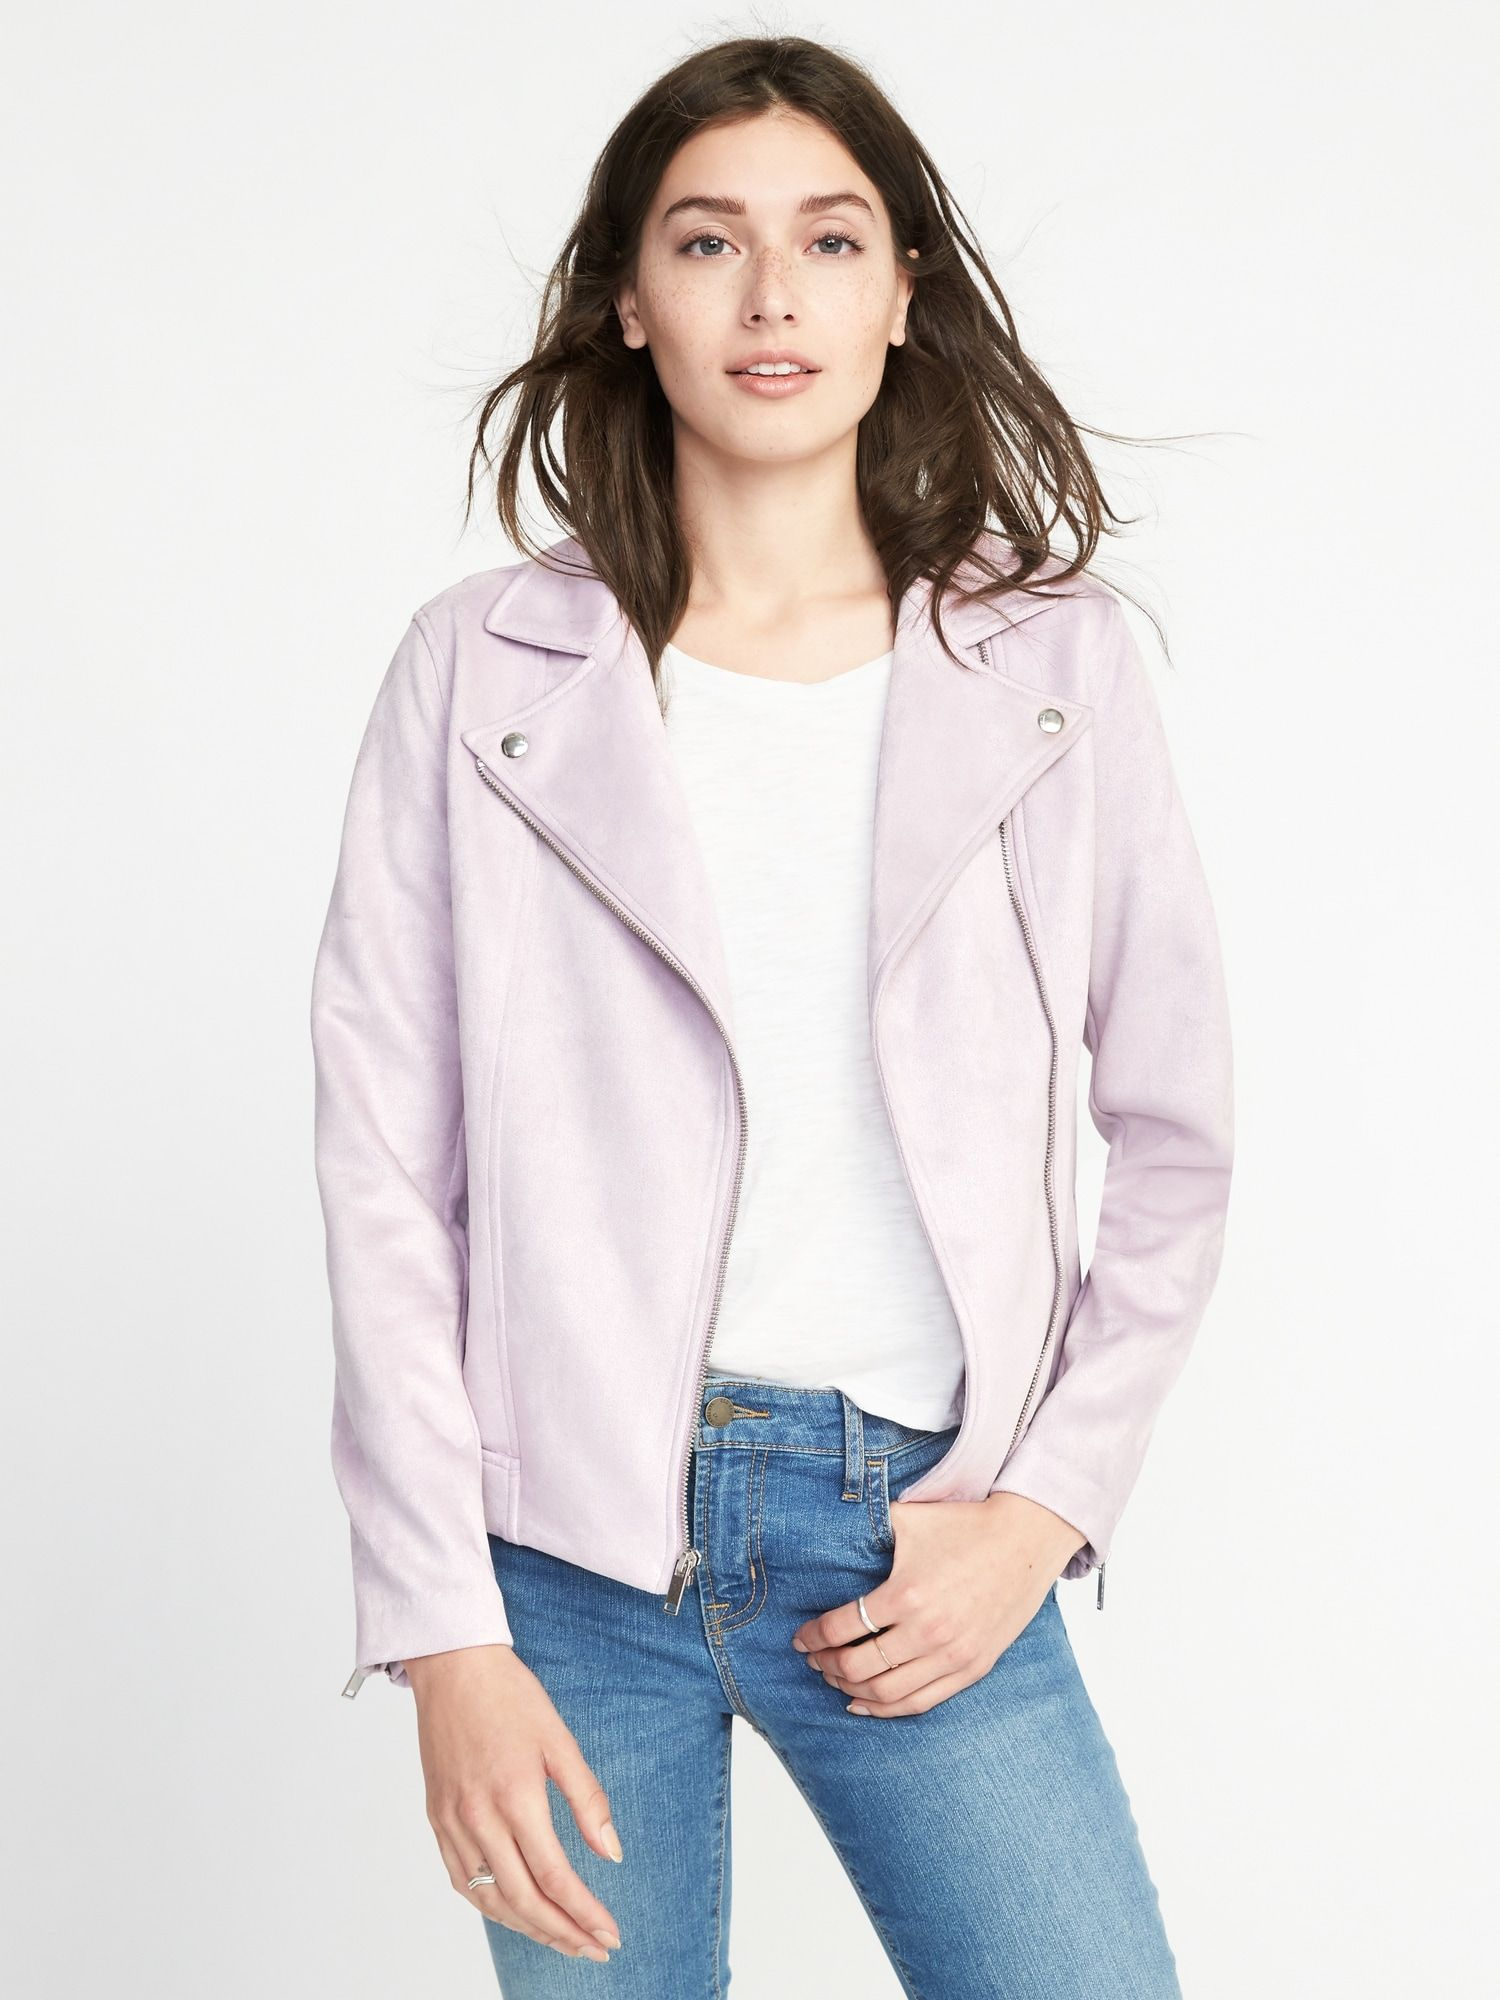 Old Navy Lilac Moto Jacket Women outerwear jacket